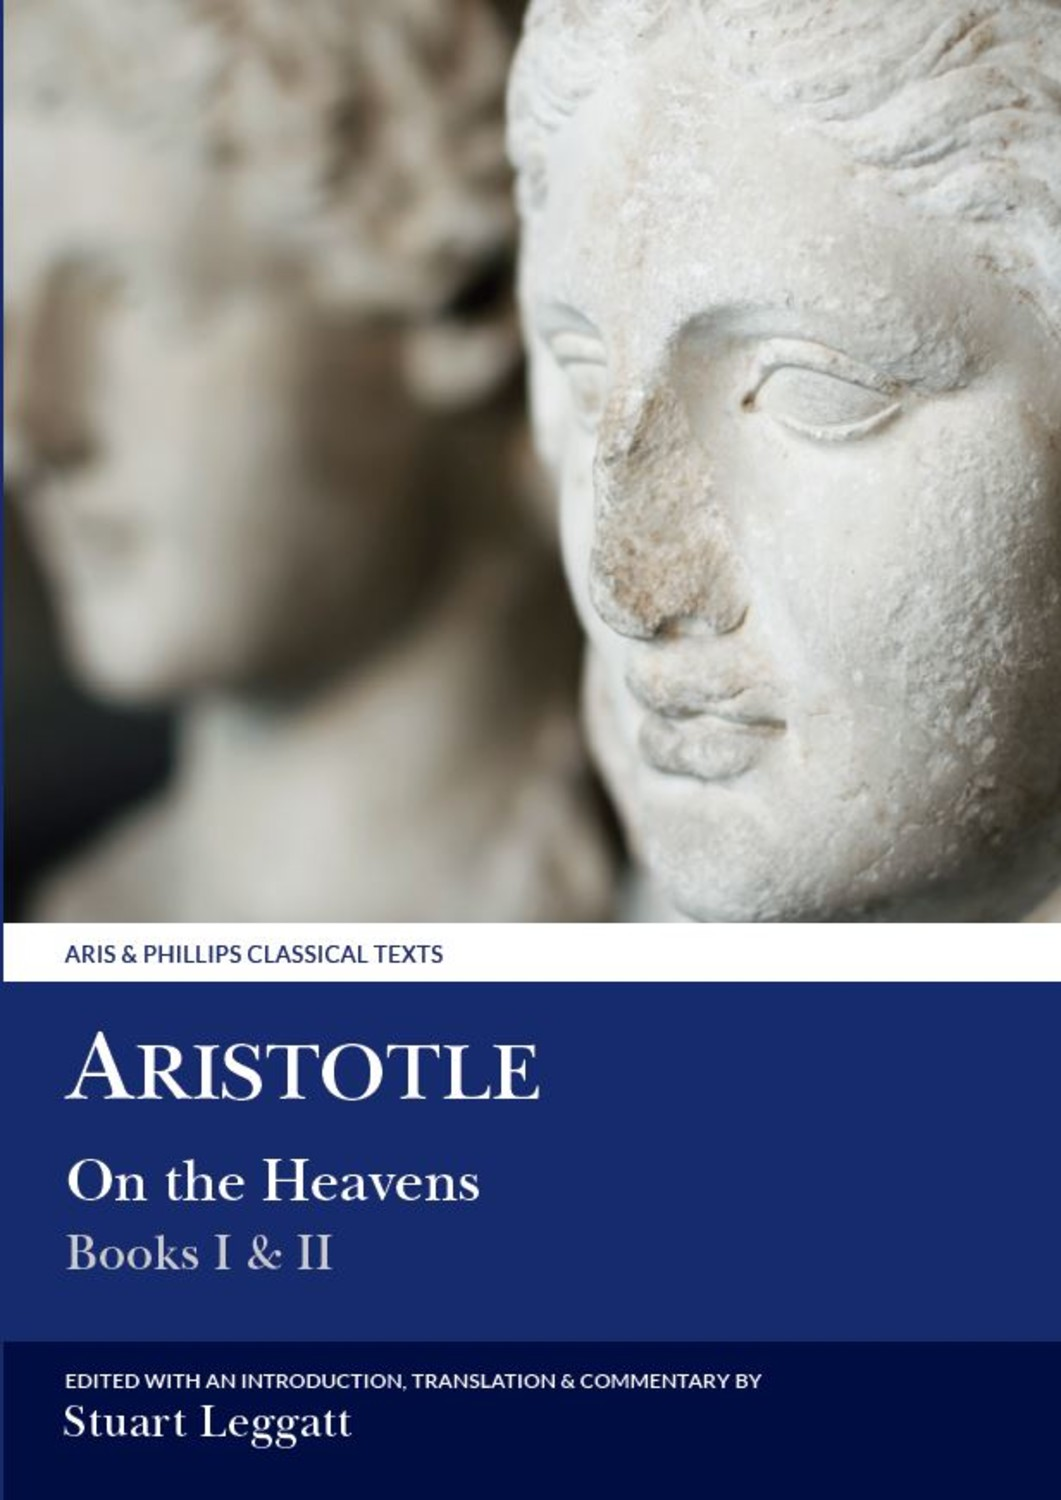 Aristotle: On the Heavens I & II